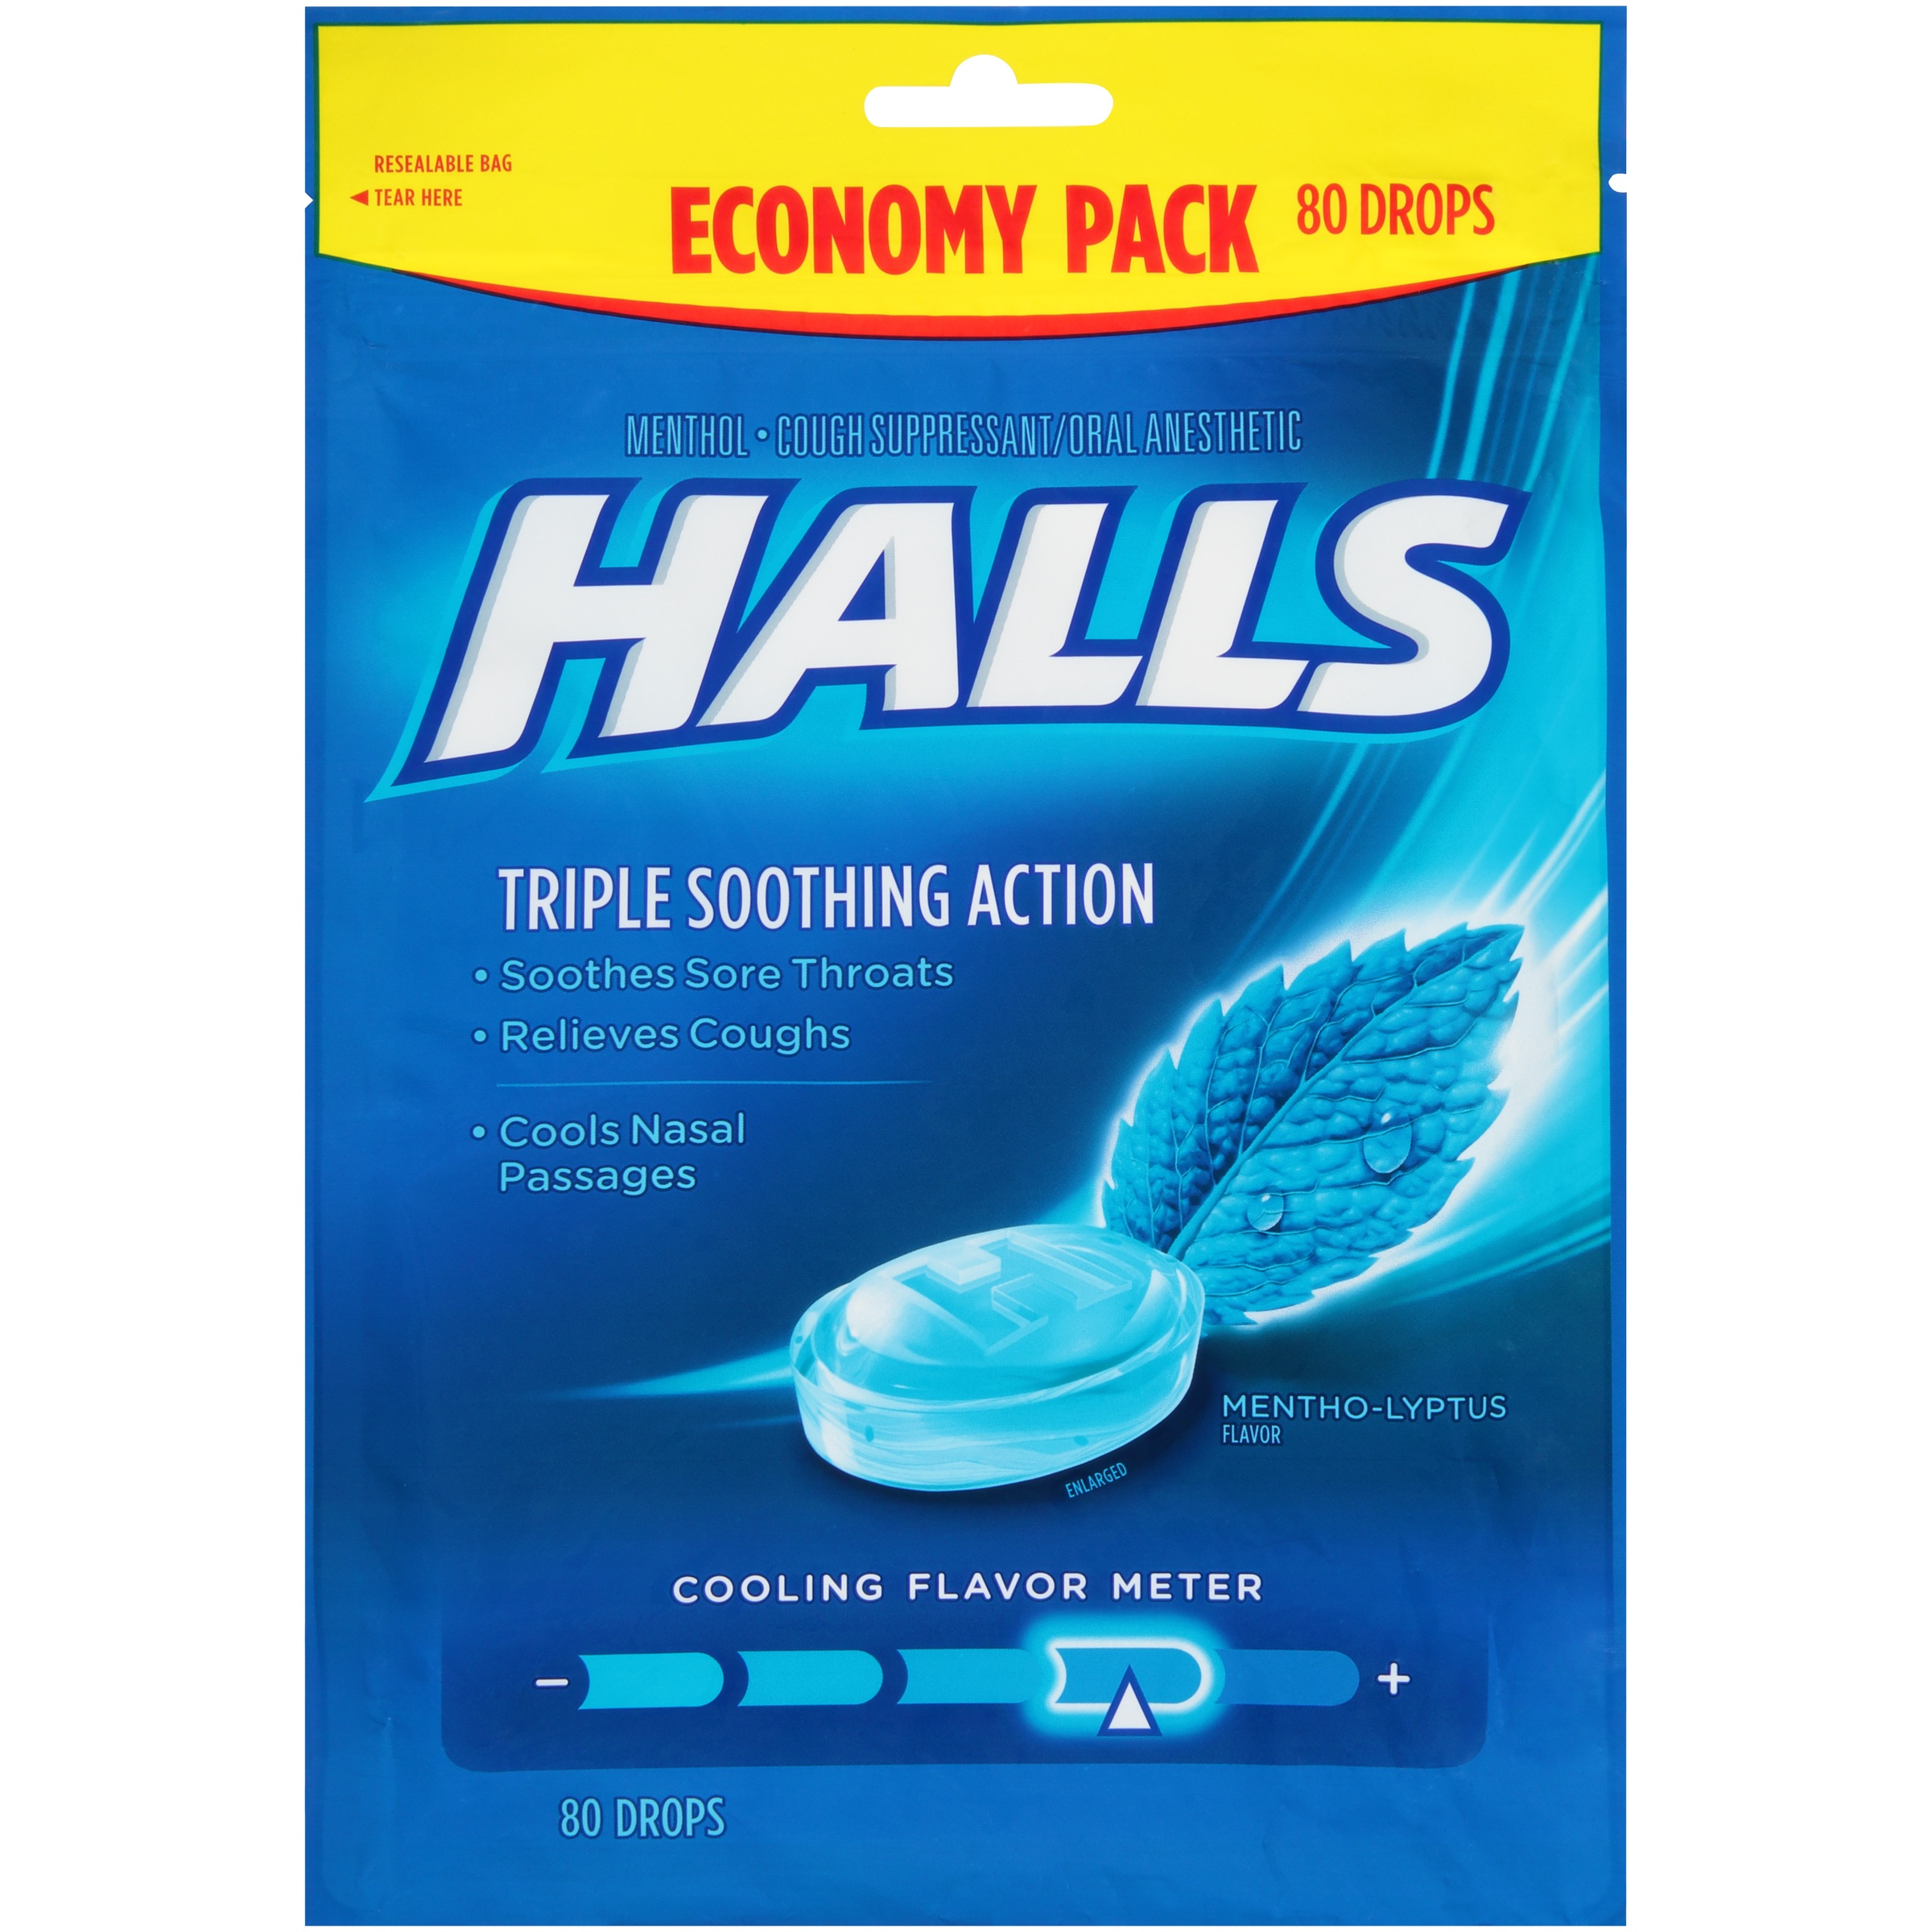 Halls Mentho-Lyptus Triple Soothing Action Menthol Cough Suppressant/Oral Anesthetic Drops 80 ct. Pouch